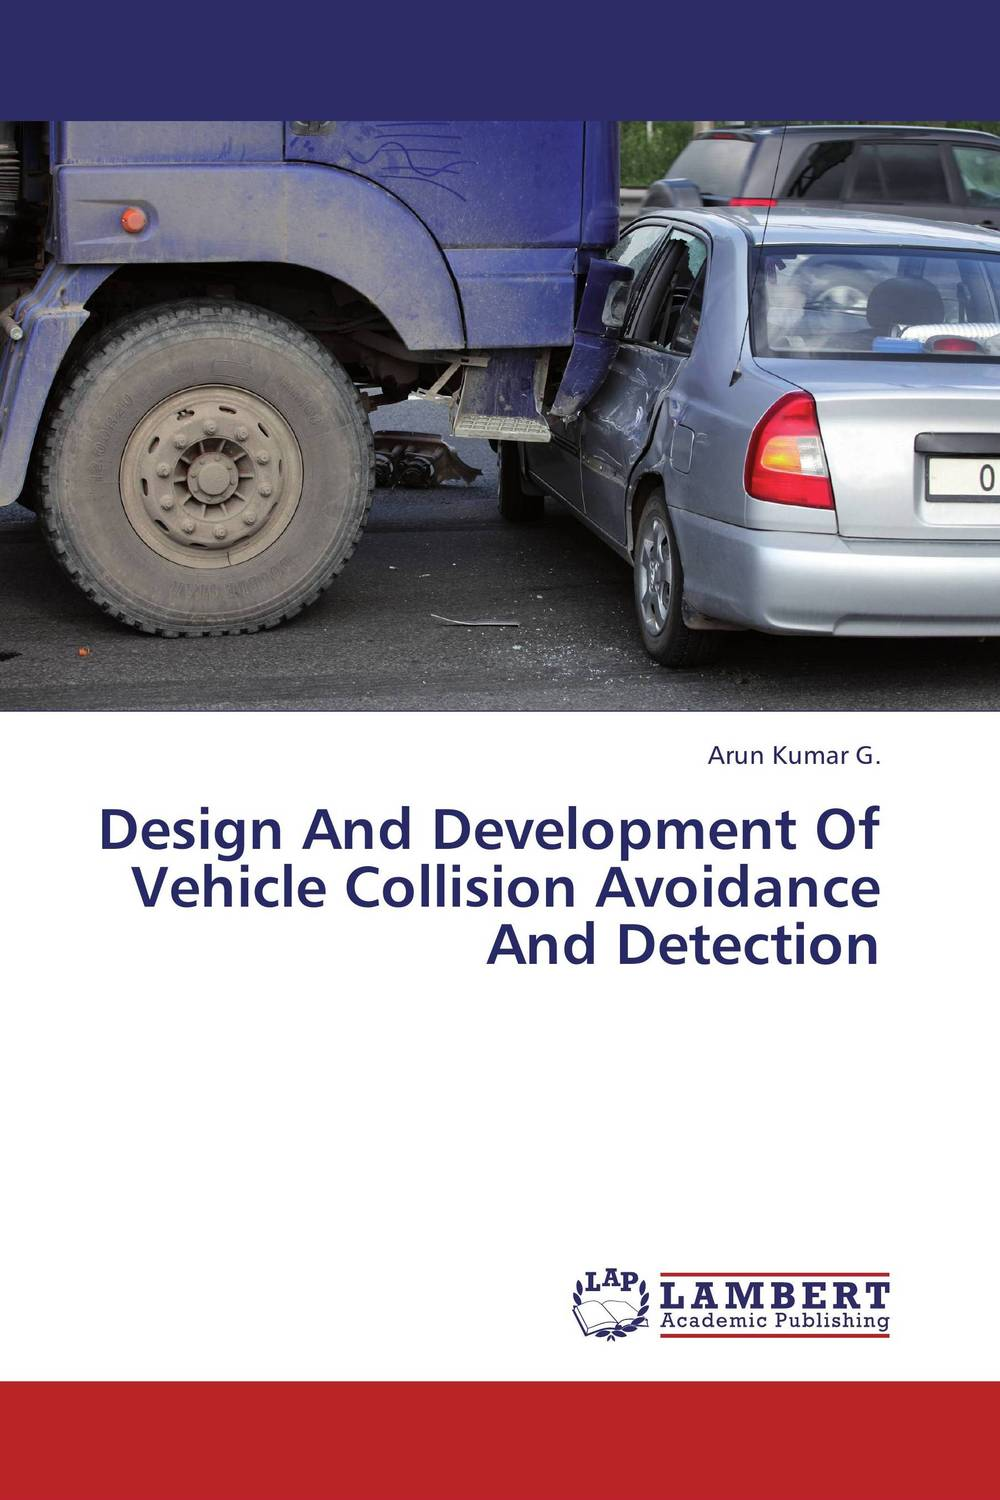 цена на Design And Development Of Vehicle Collision Avoidance And Detection